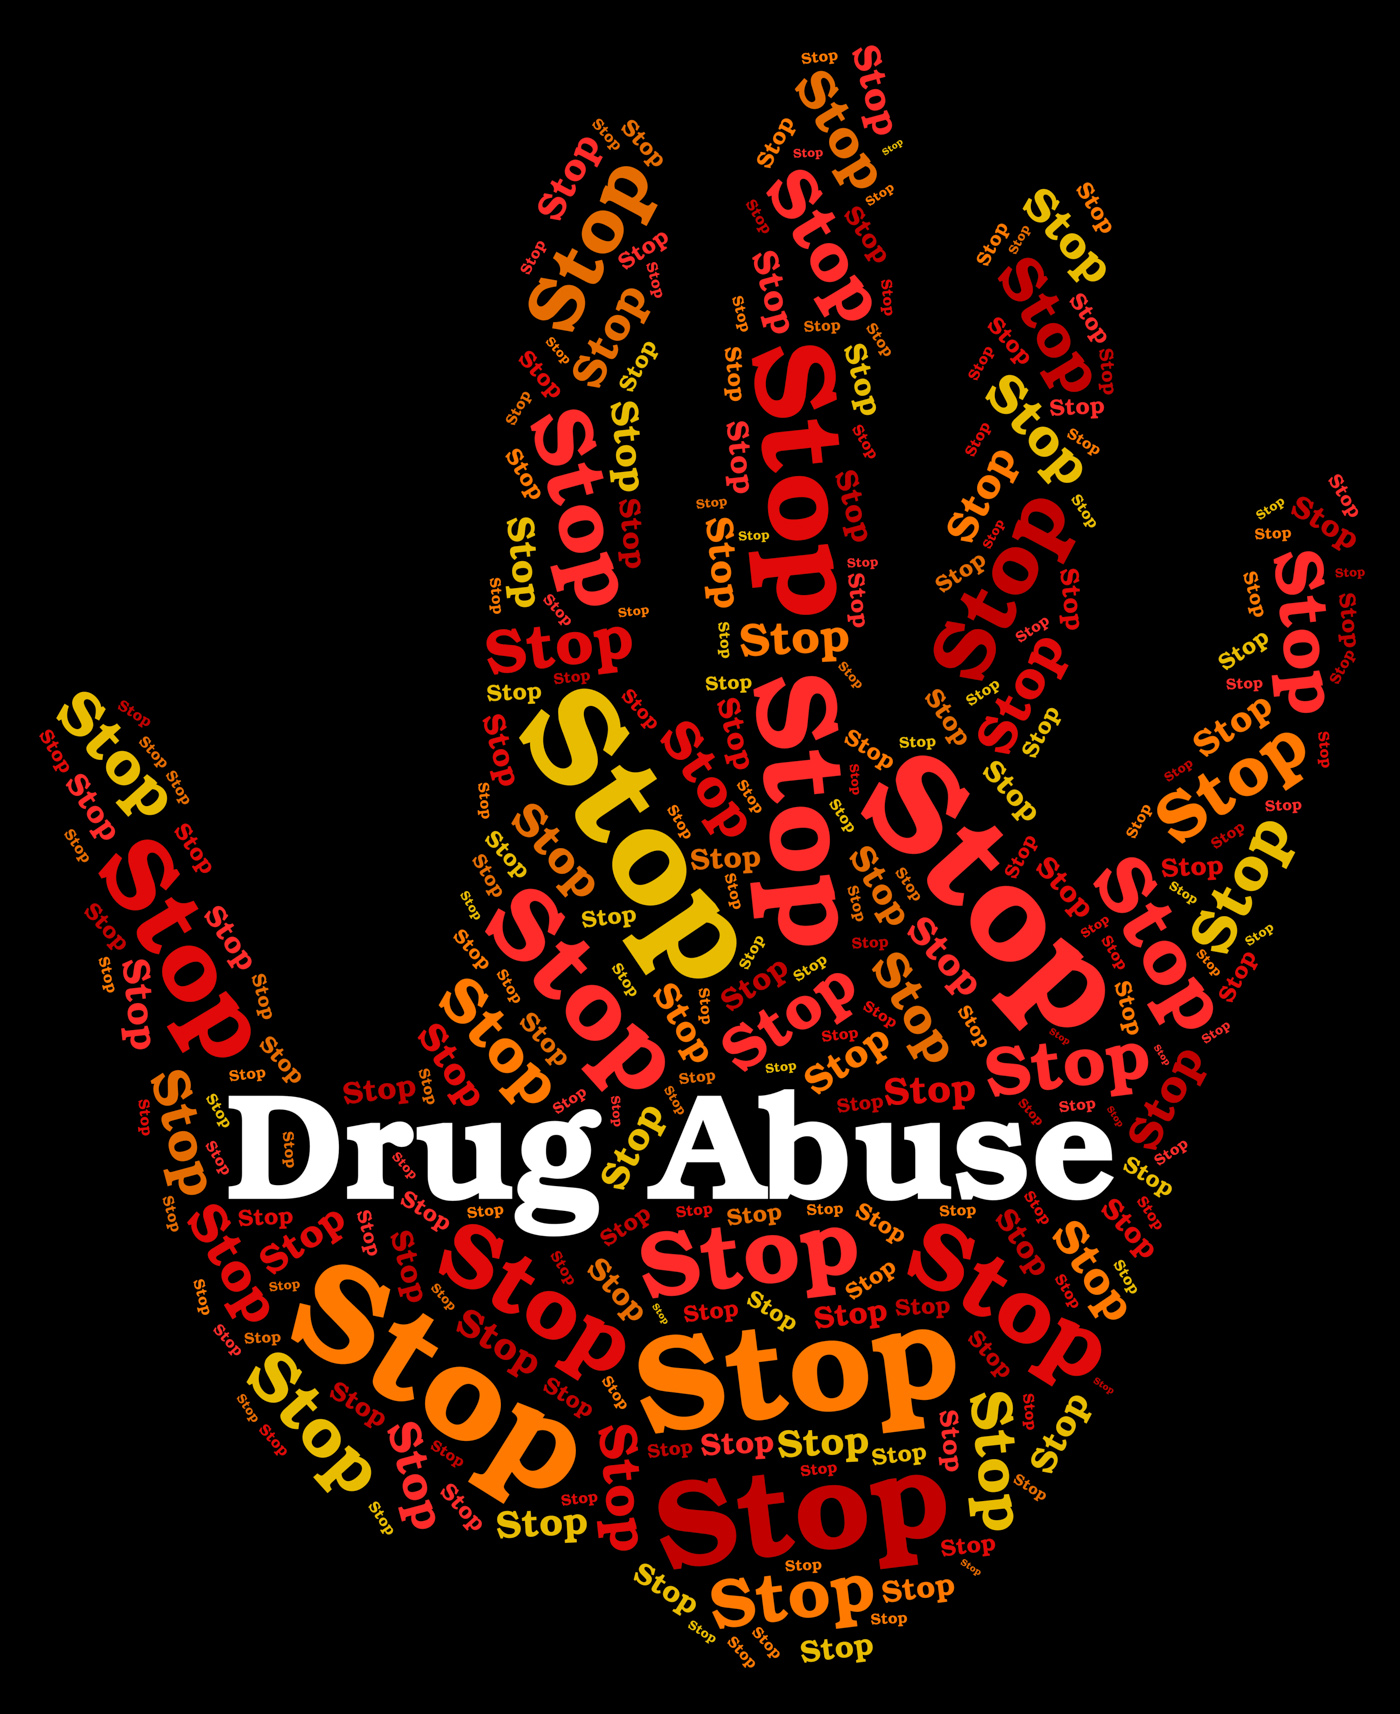 Stop drug abuse means abused dependence and addiction photo